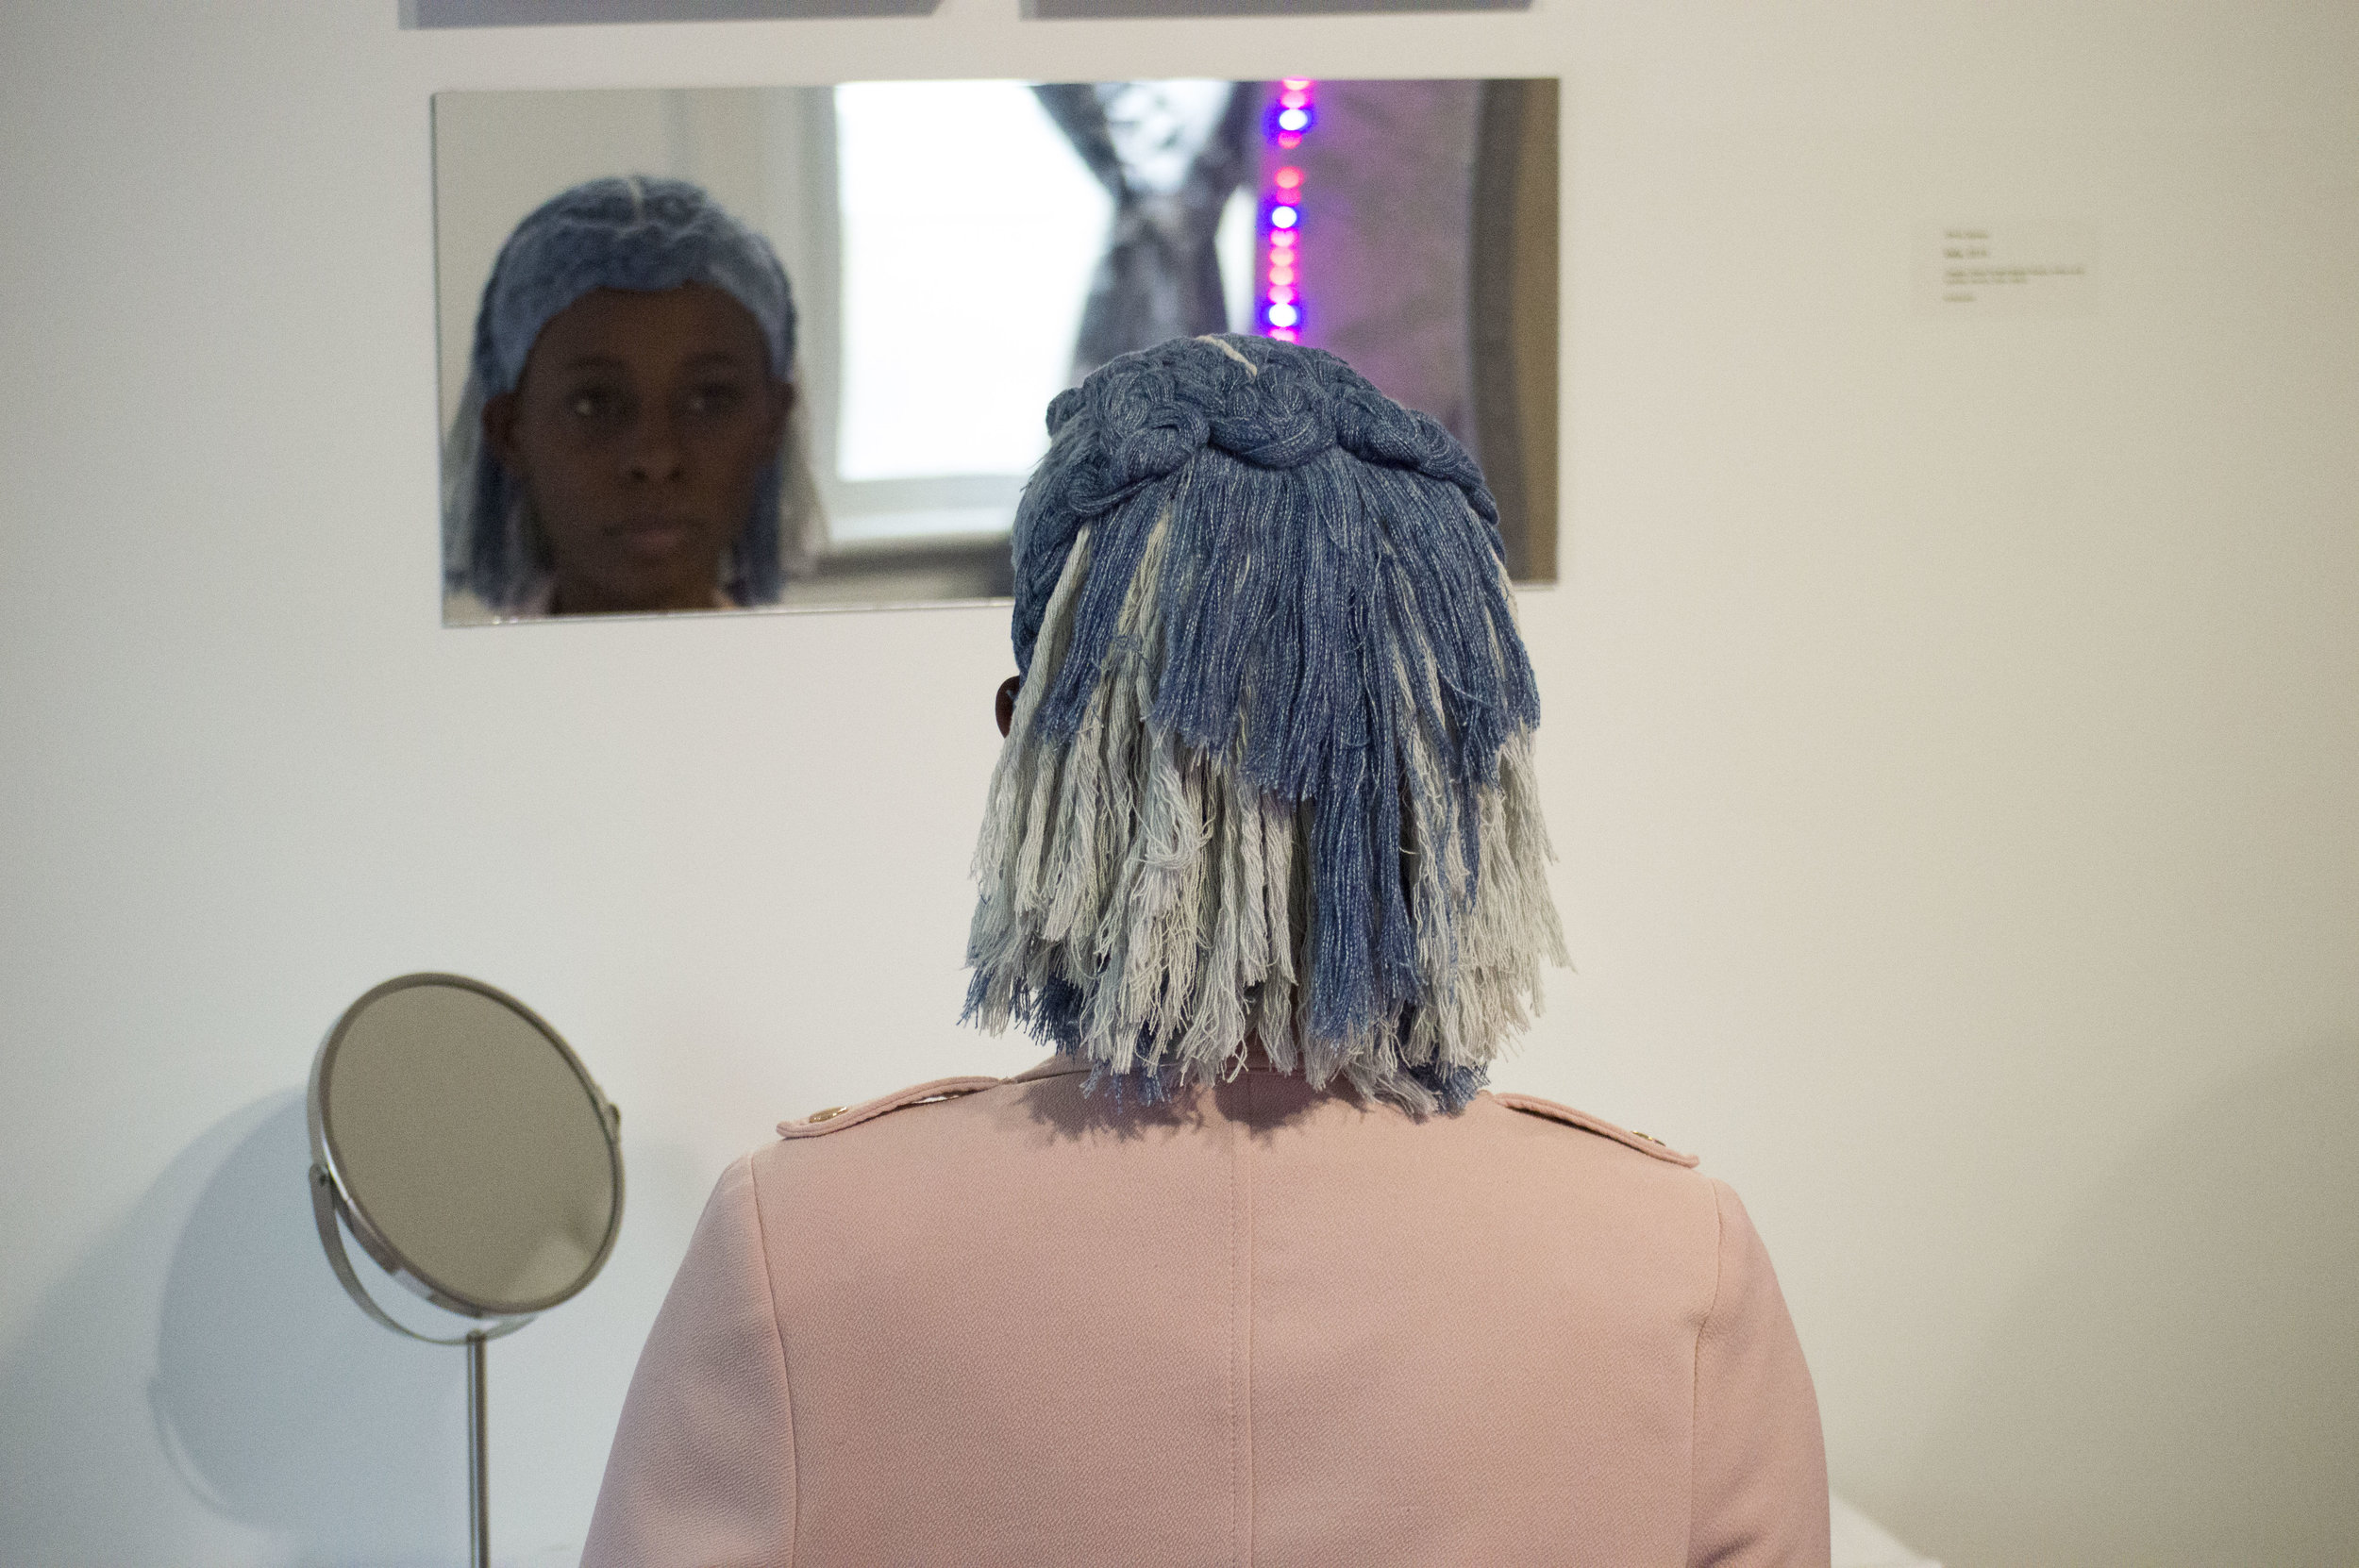 DenimWigs - by Renee Matthews, worn here by Chiedza Pasipanodya